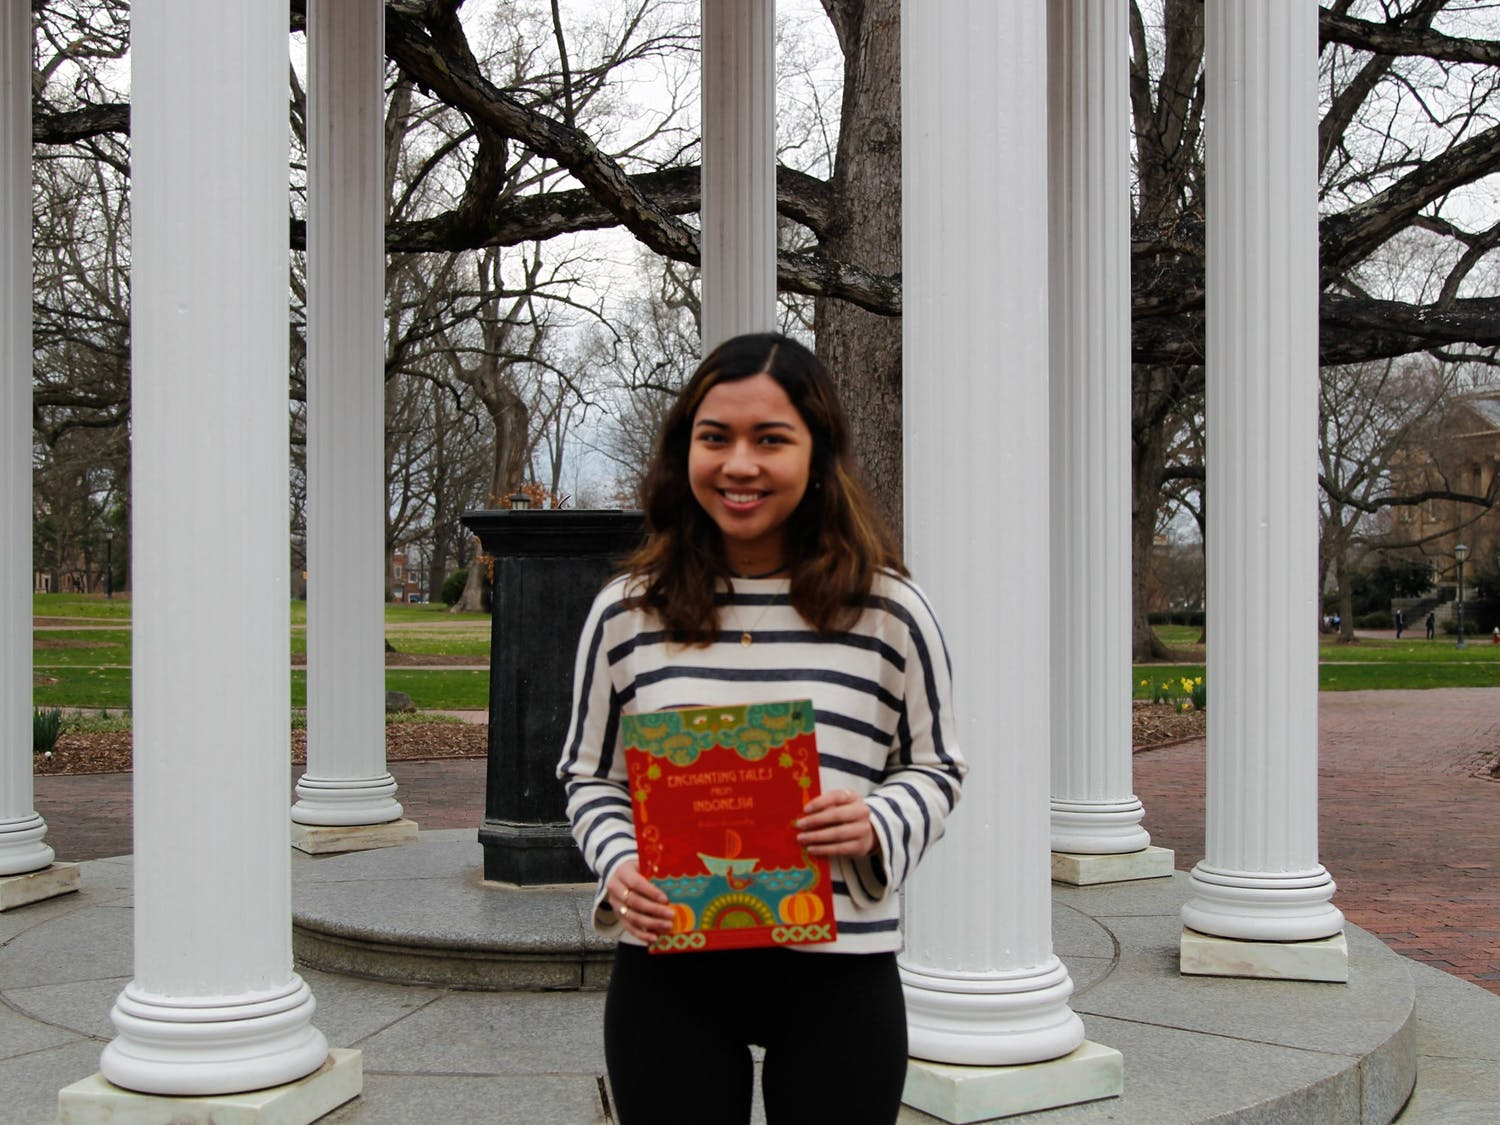 """Andari Deswandhy, a first-year global studies major, poses for a portrait at the Old Well with her book, Enchanting Tales from Indonesia, on Feb. 26, 2020.  Deswandhy says, """"I'm passionate about bringing different cultures together and helping people find similarities in our differences.""""."""